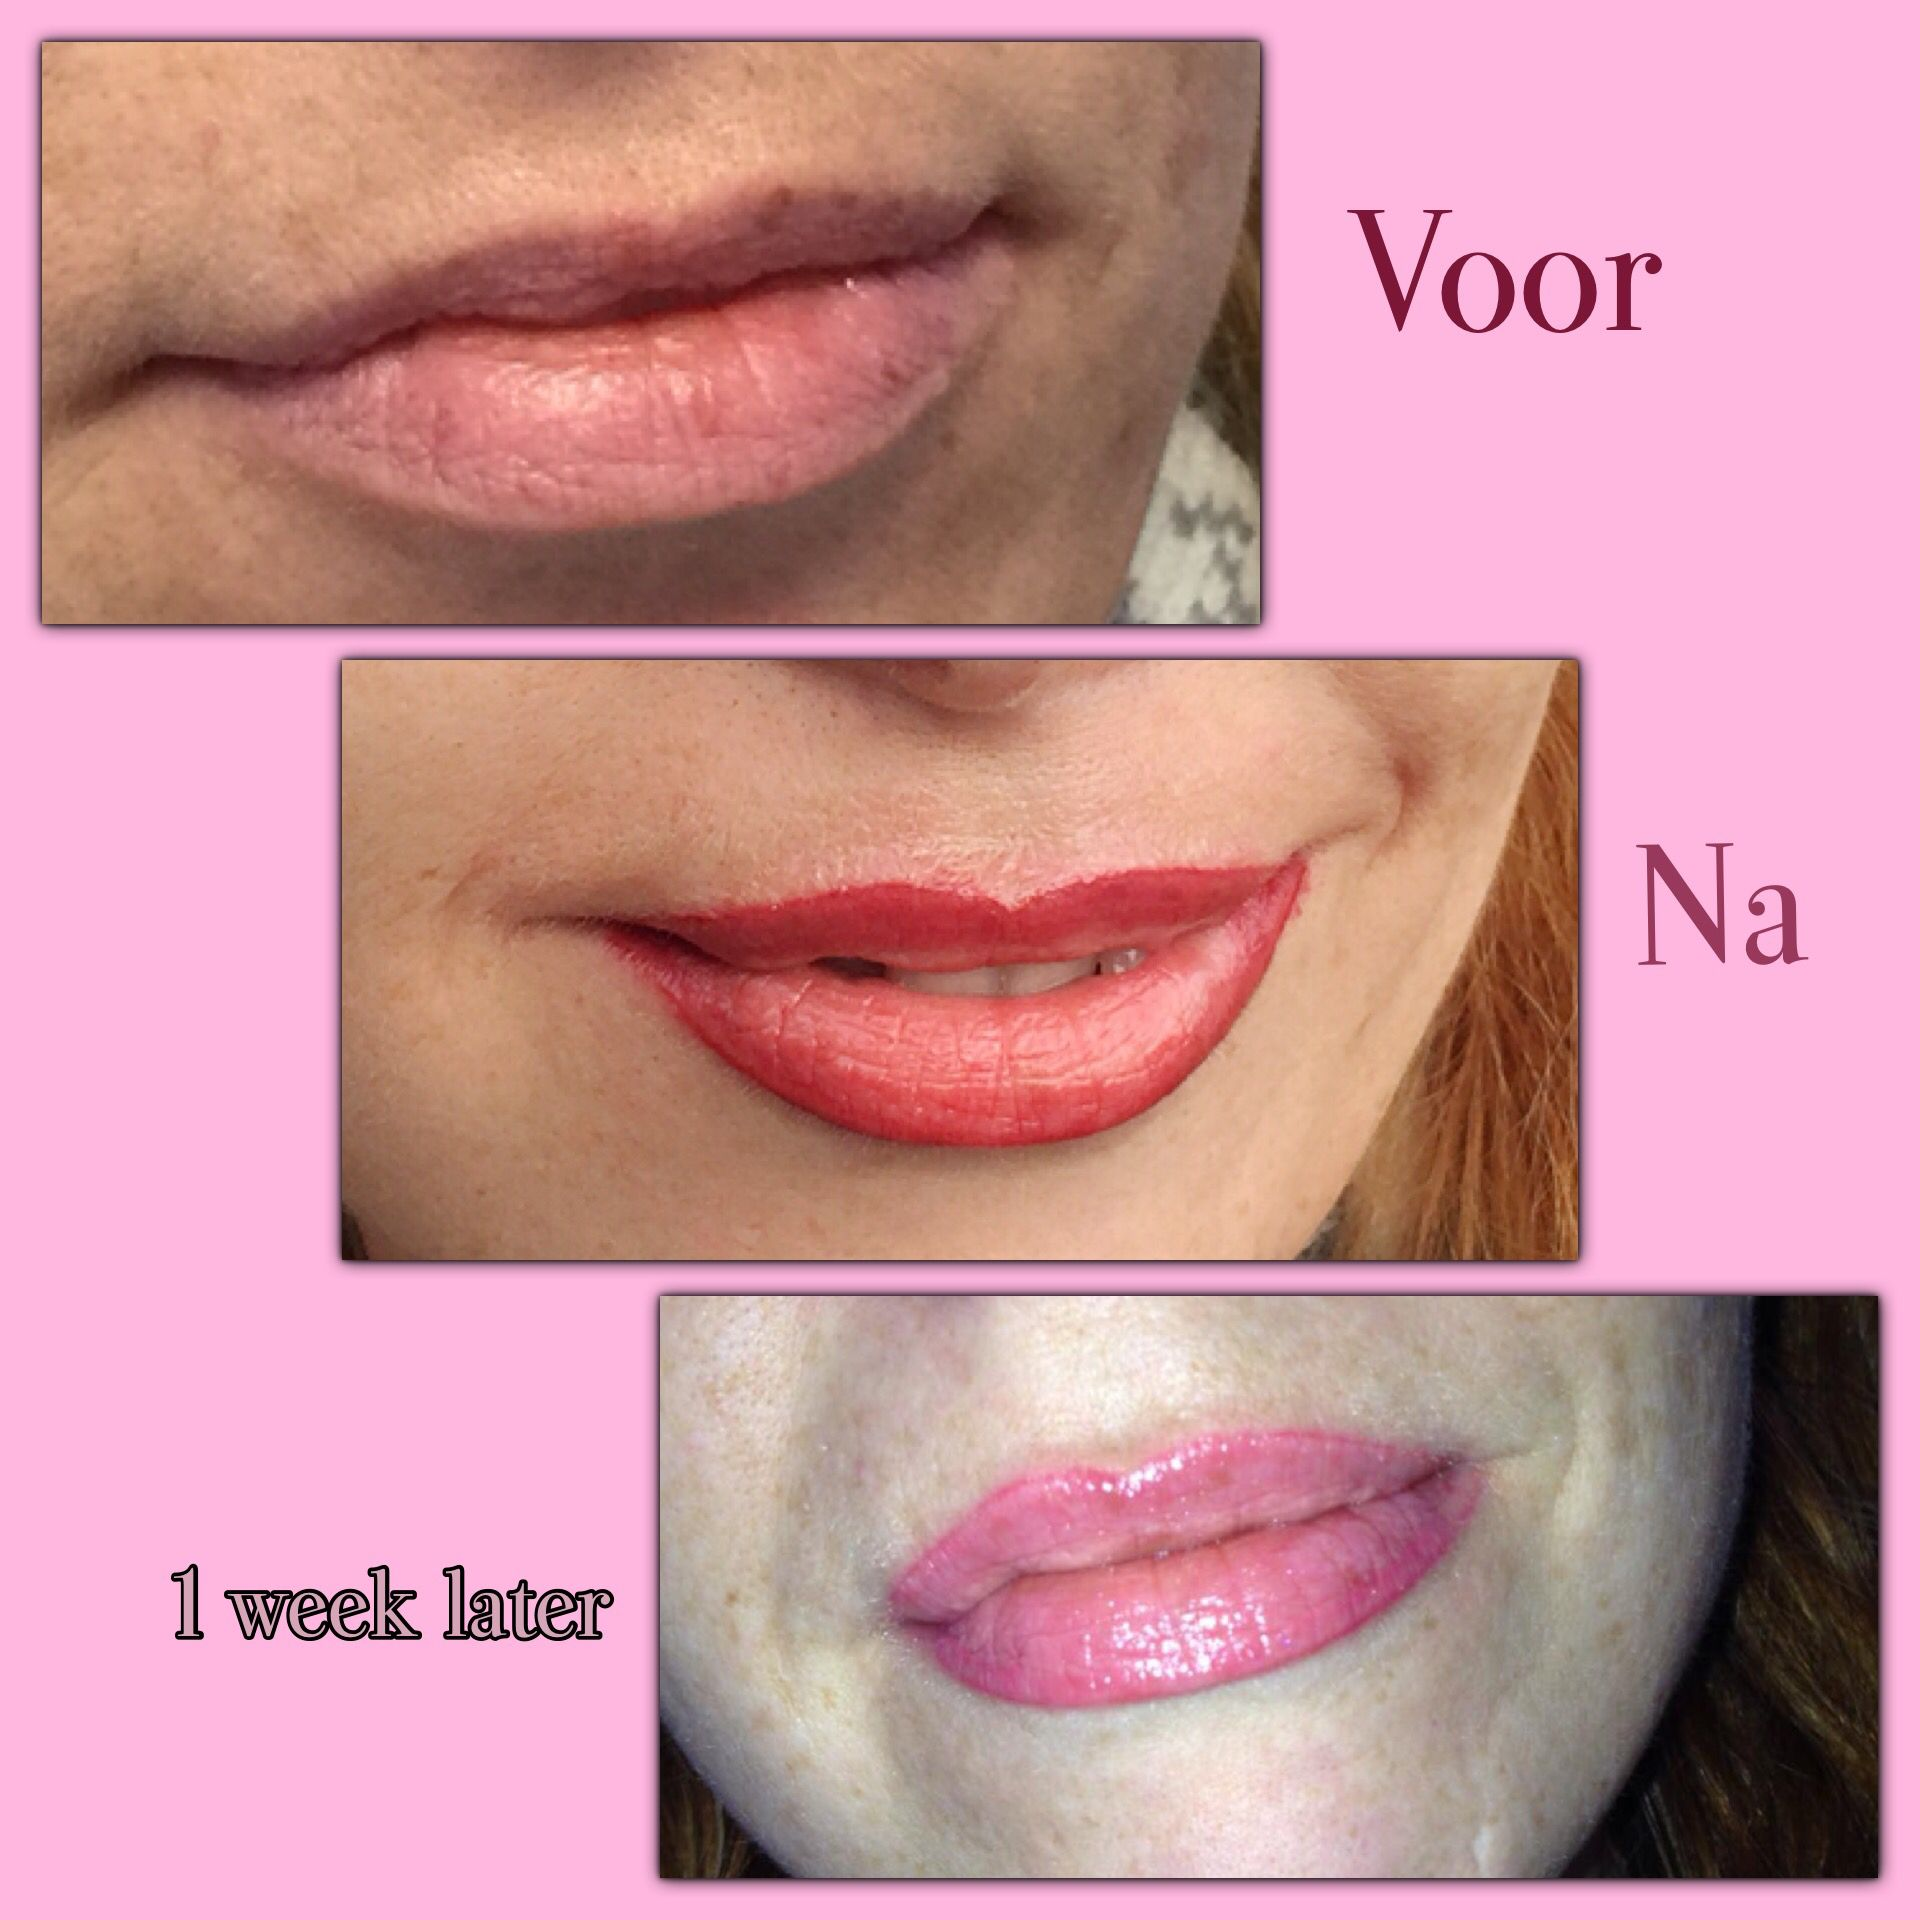 Schöne Lippen Schminken Permanent Make Up Lippen My Work Pinterest